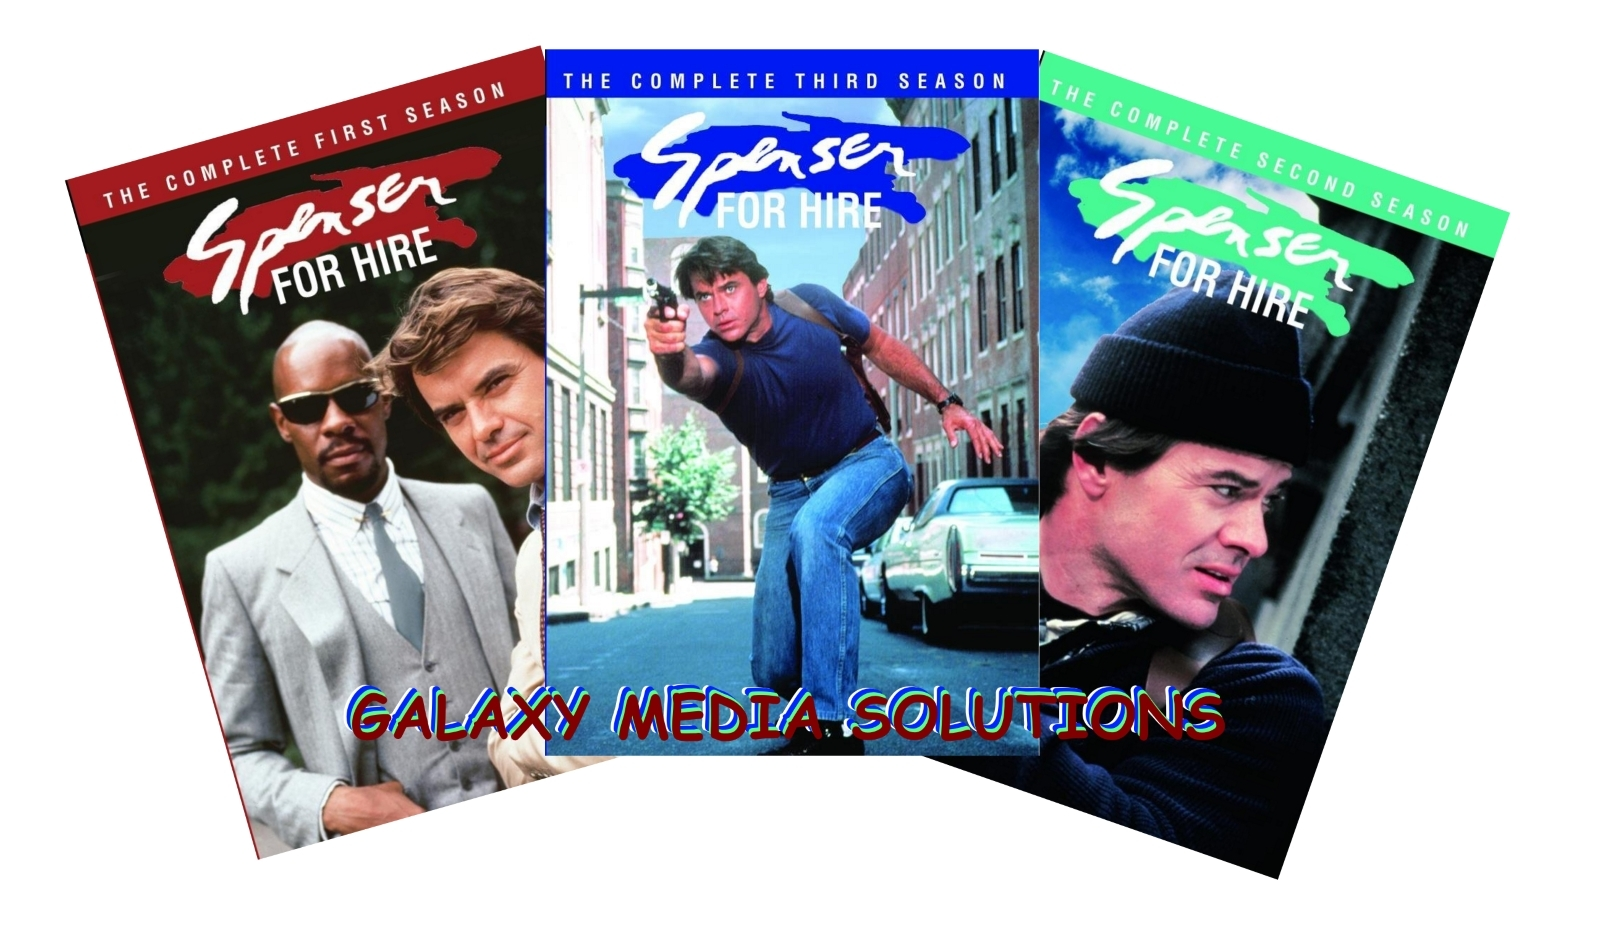 Spenser for hire season 1 3 one  three dvd bundle